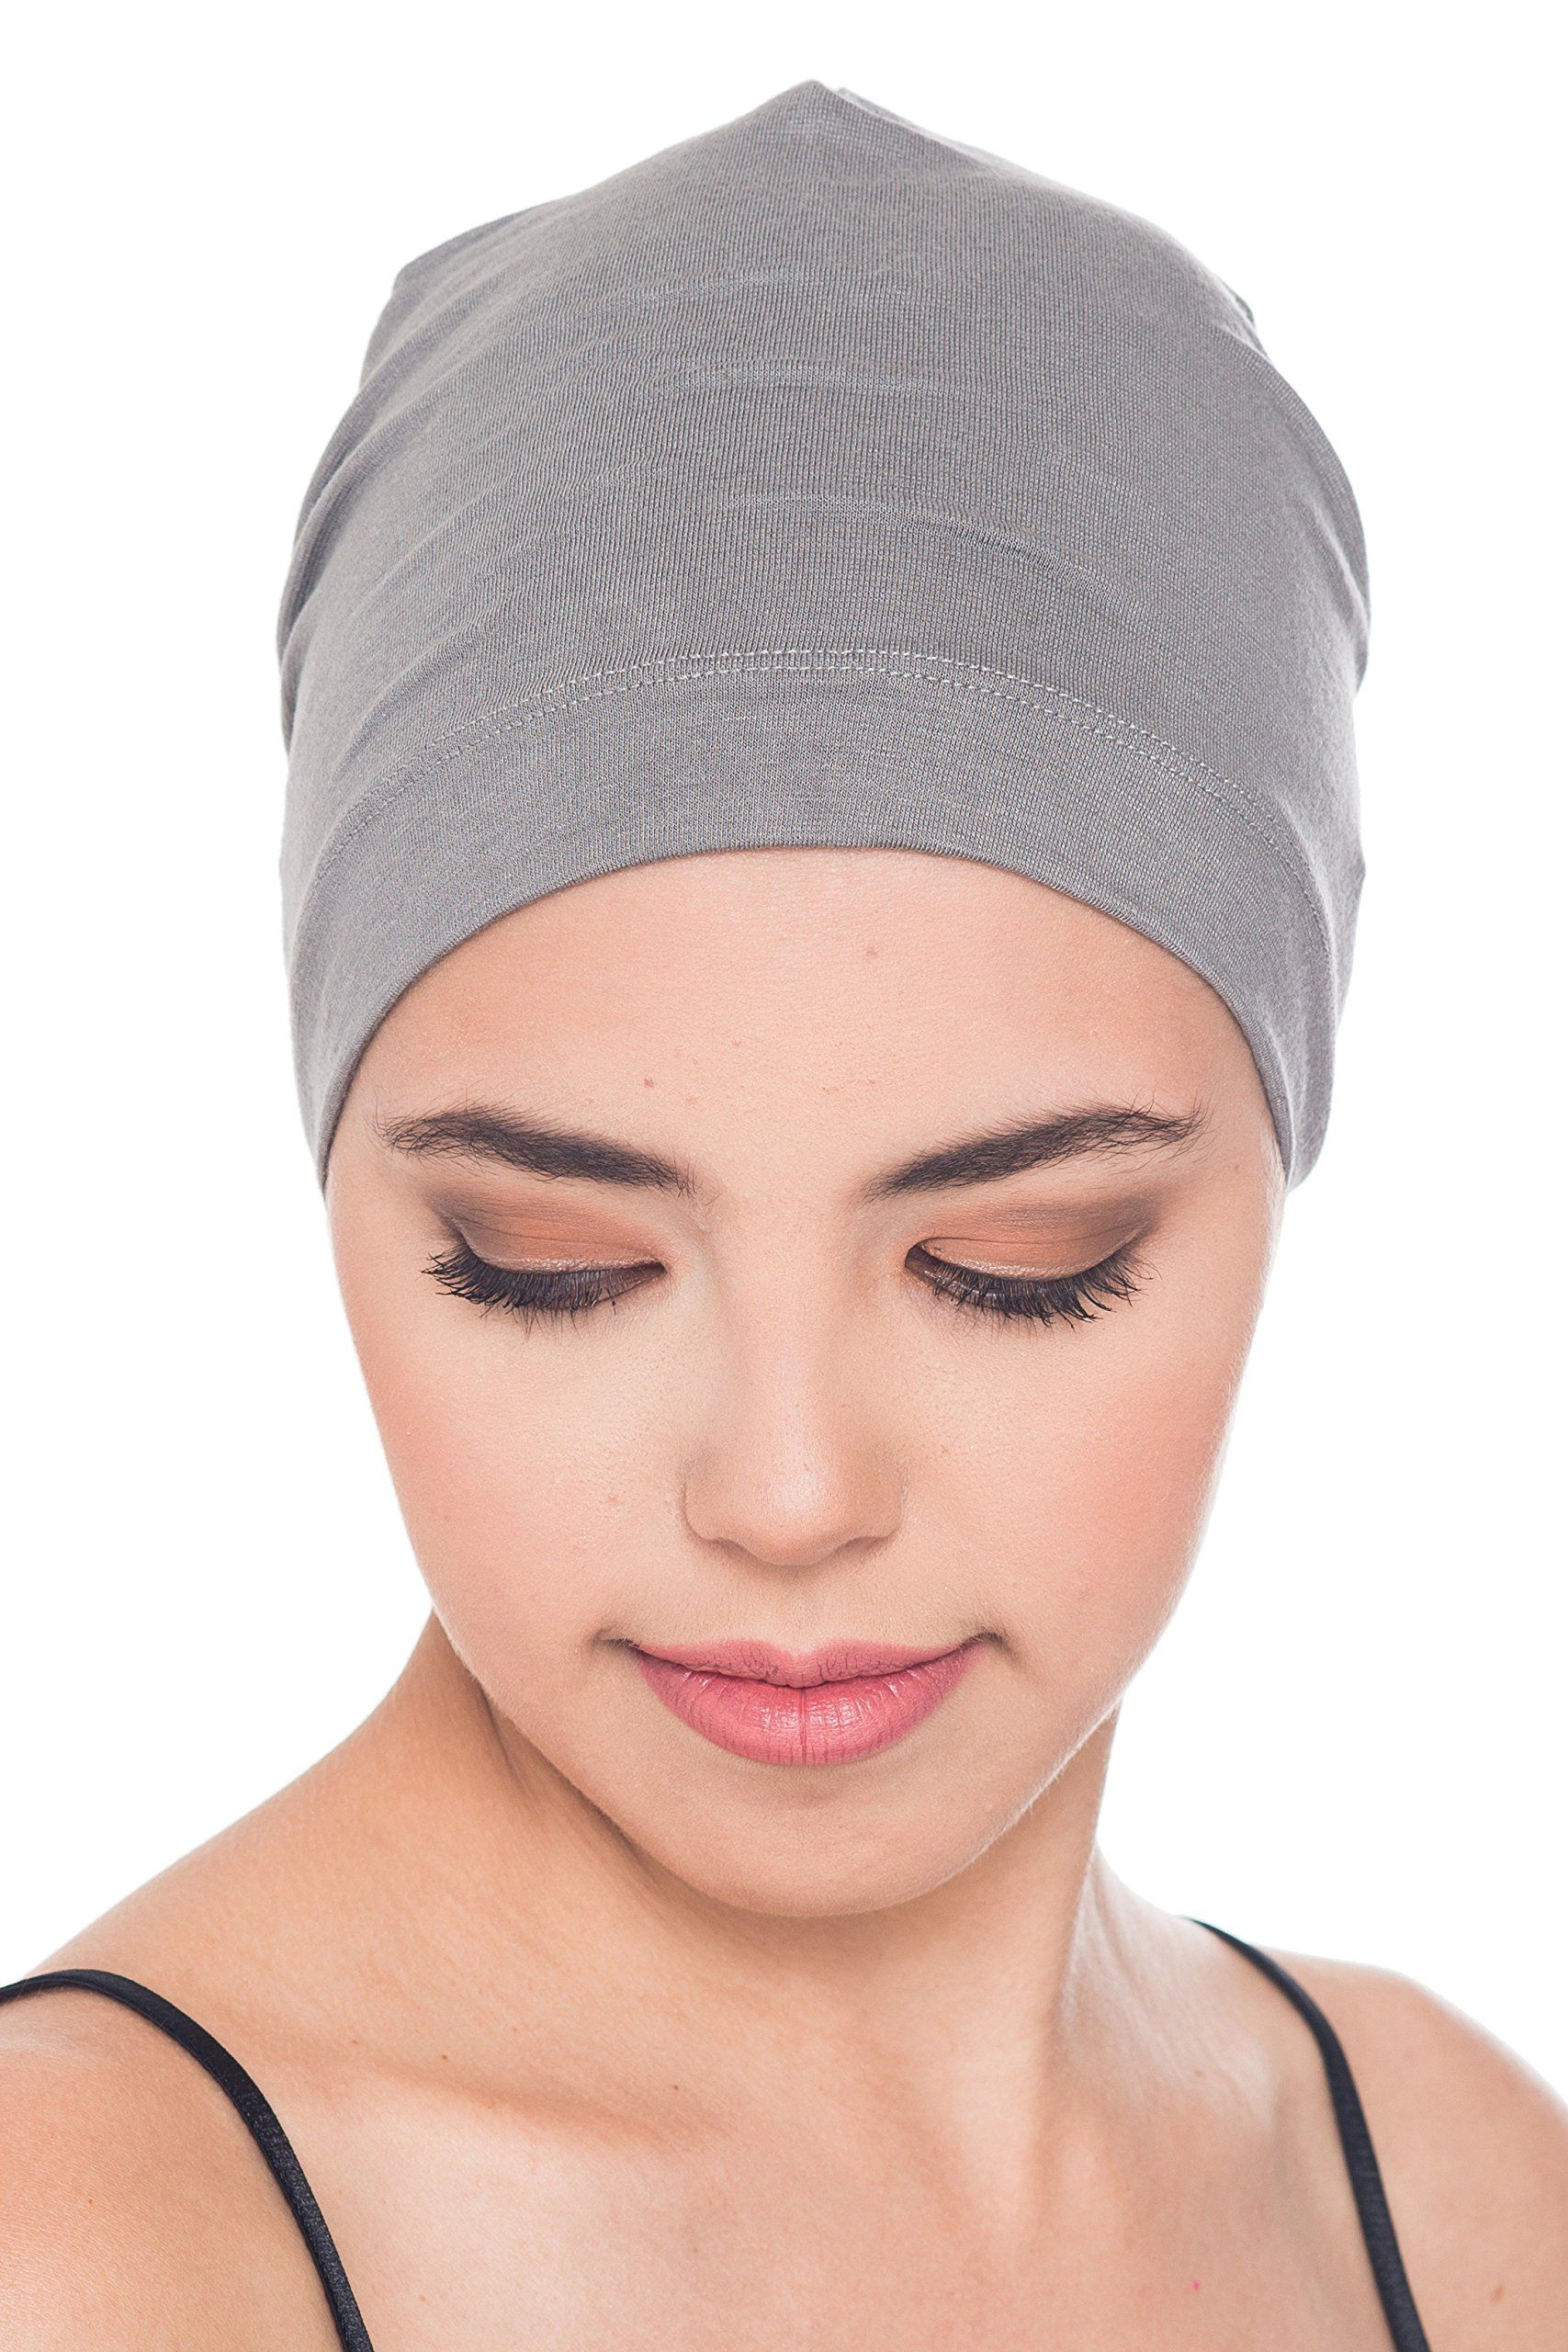 Unisex Essential Cotton Indoor Caps for Chemo, Hair Loss